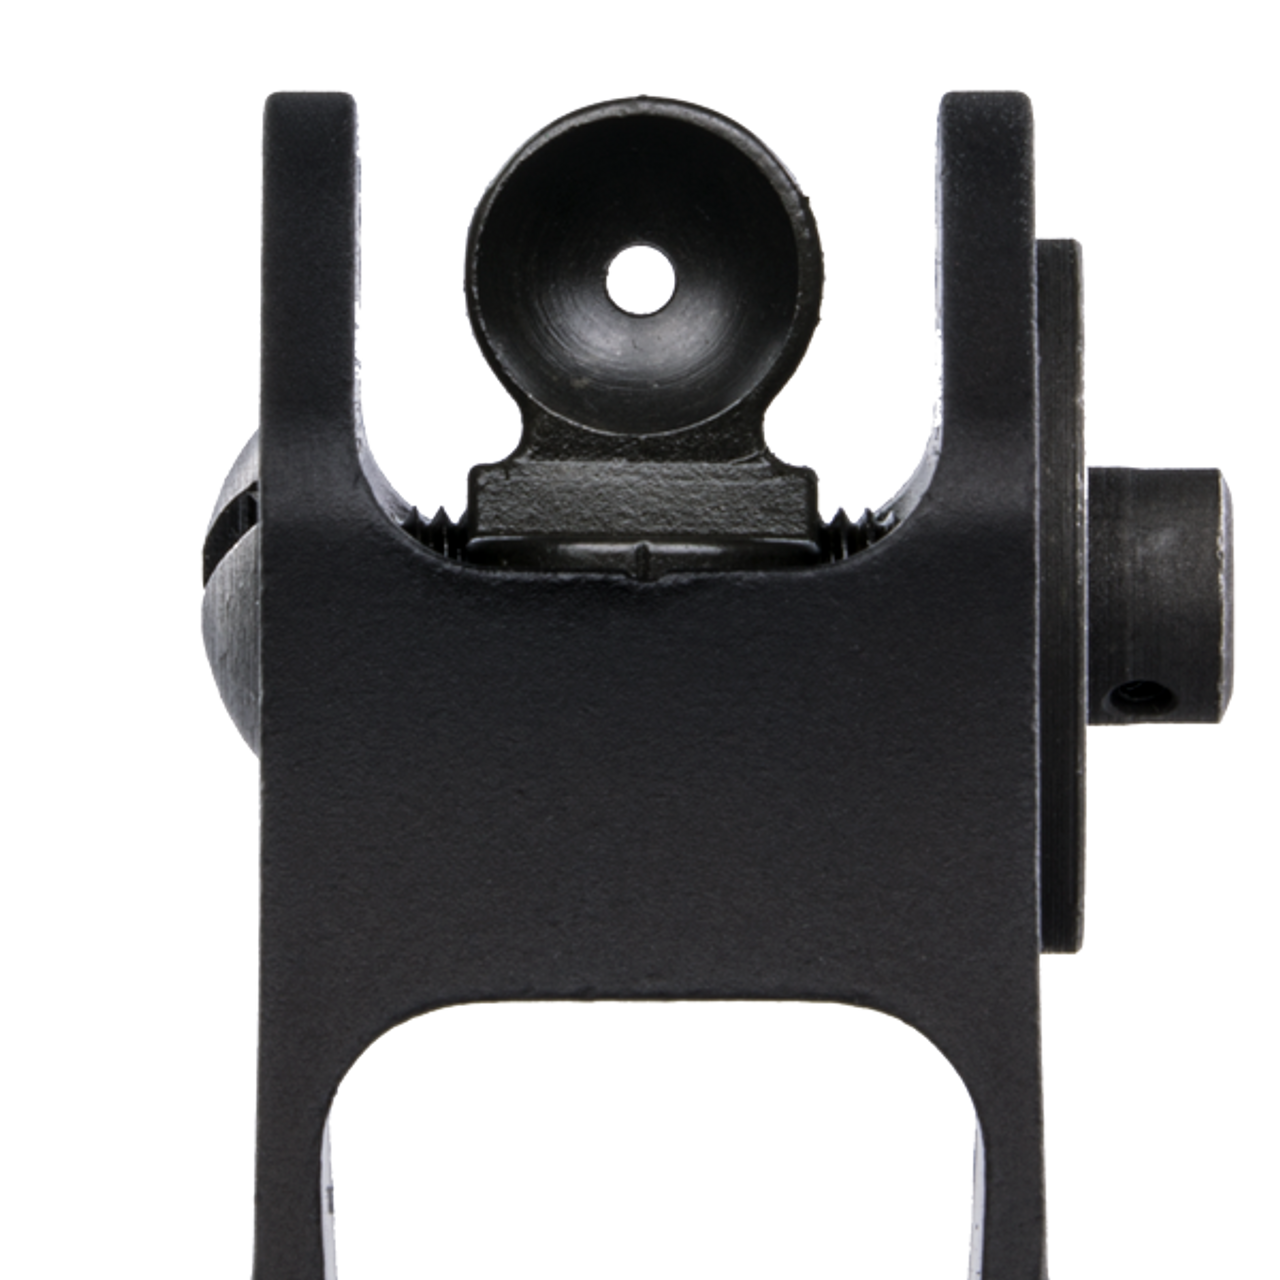 Scalarworks PEAK/Fixed Iron Sights - Front and Rear